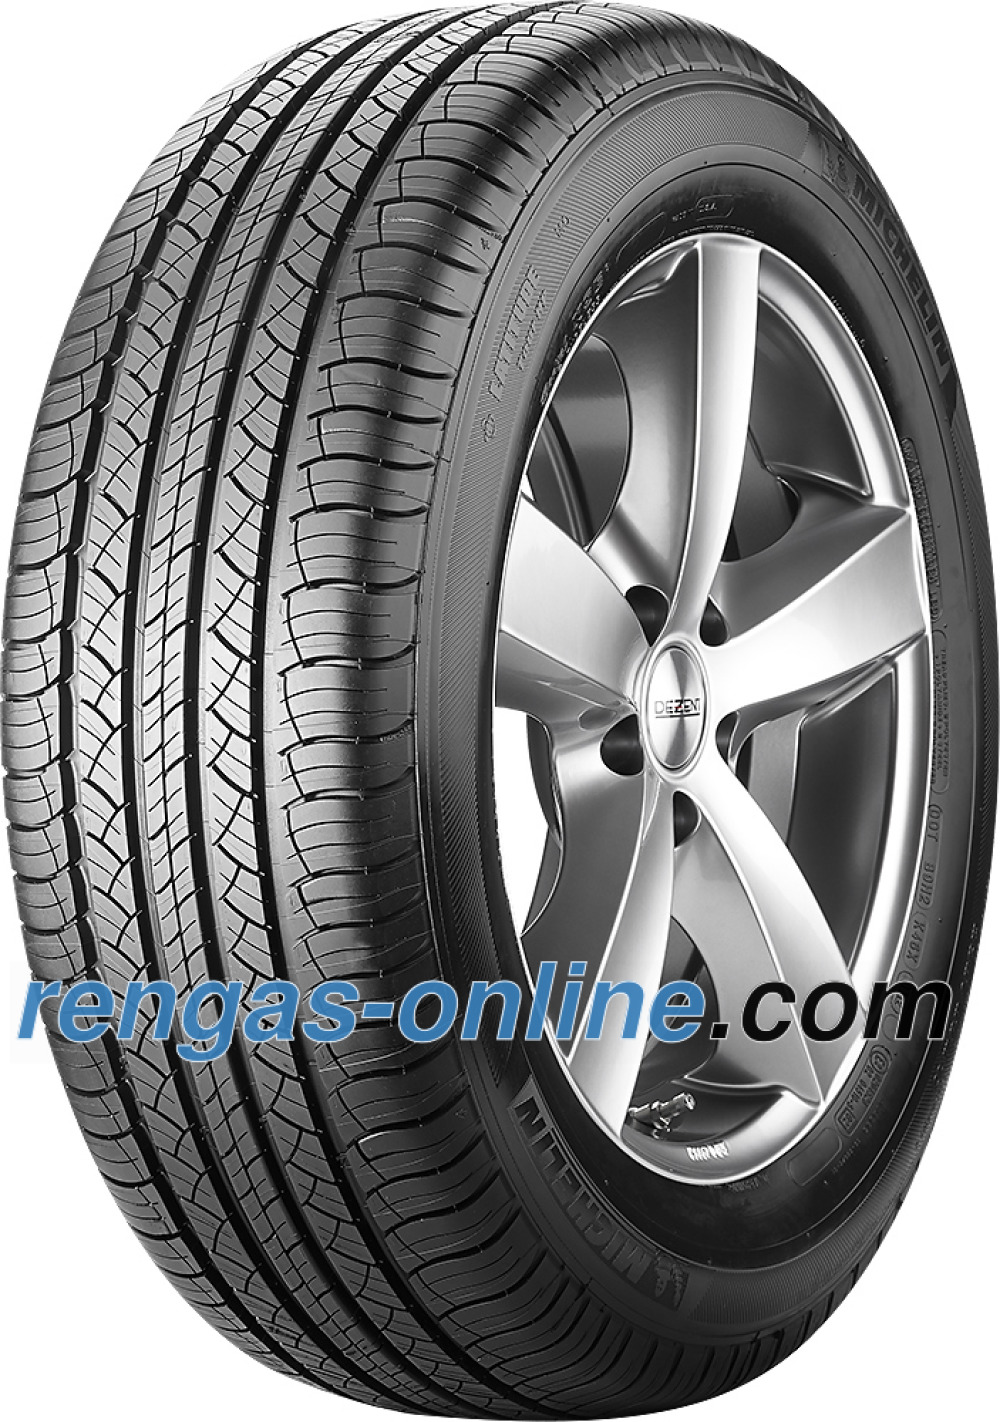 michelin-latitude-tour-hp-p23565-r18-104h